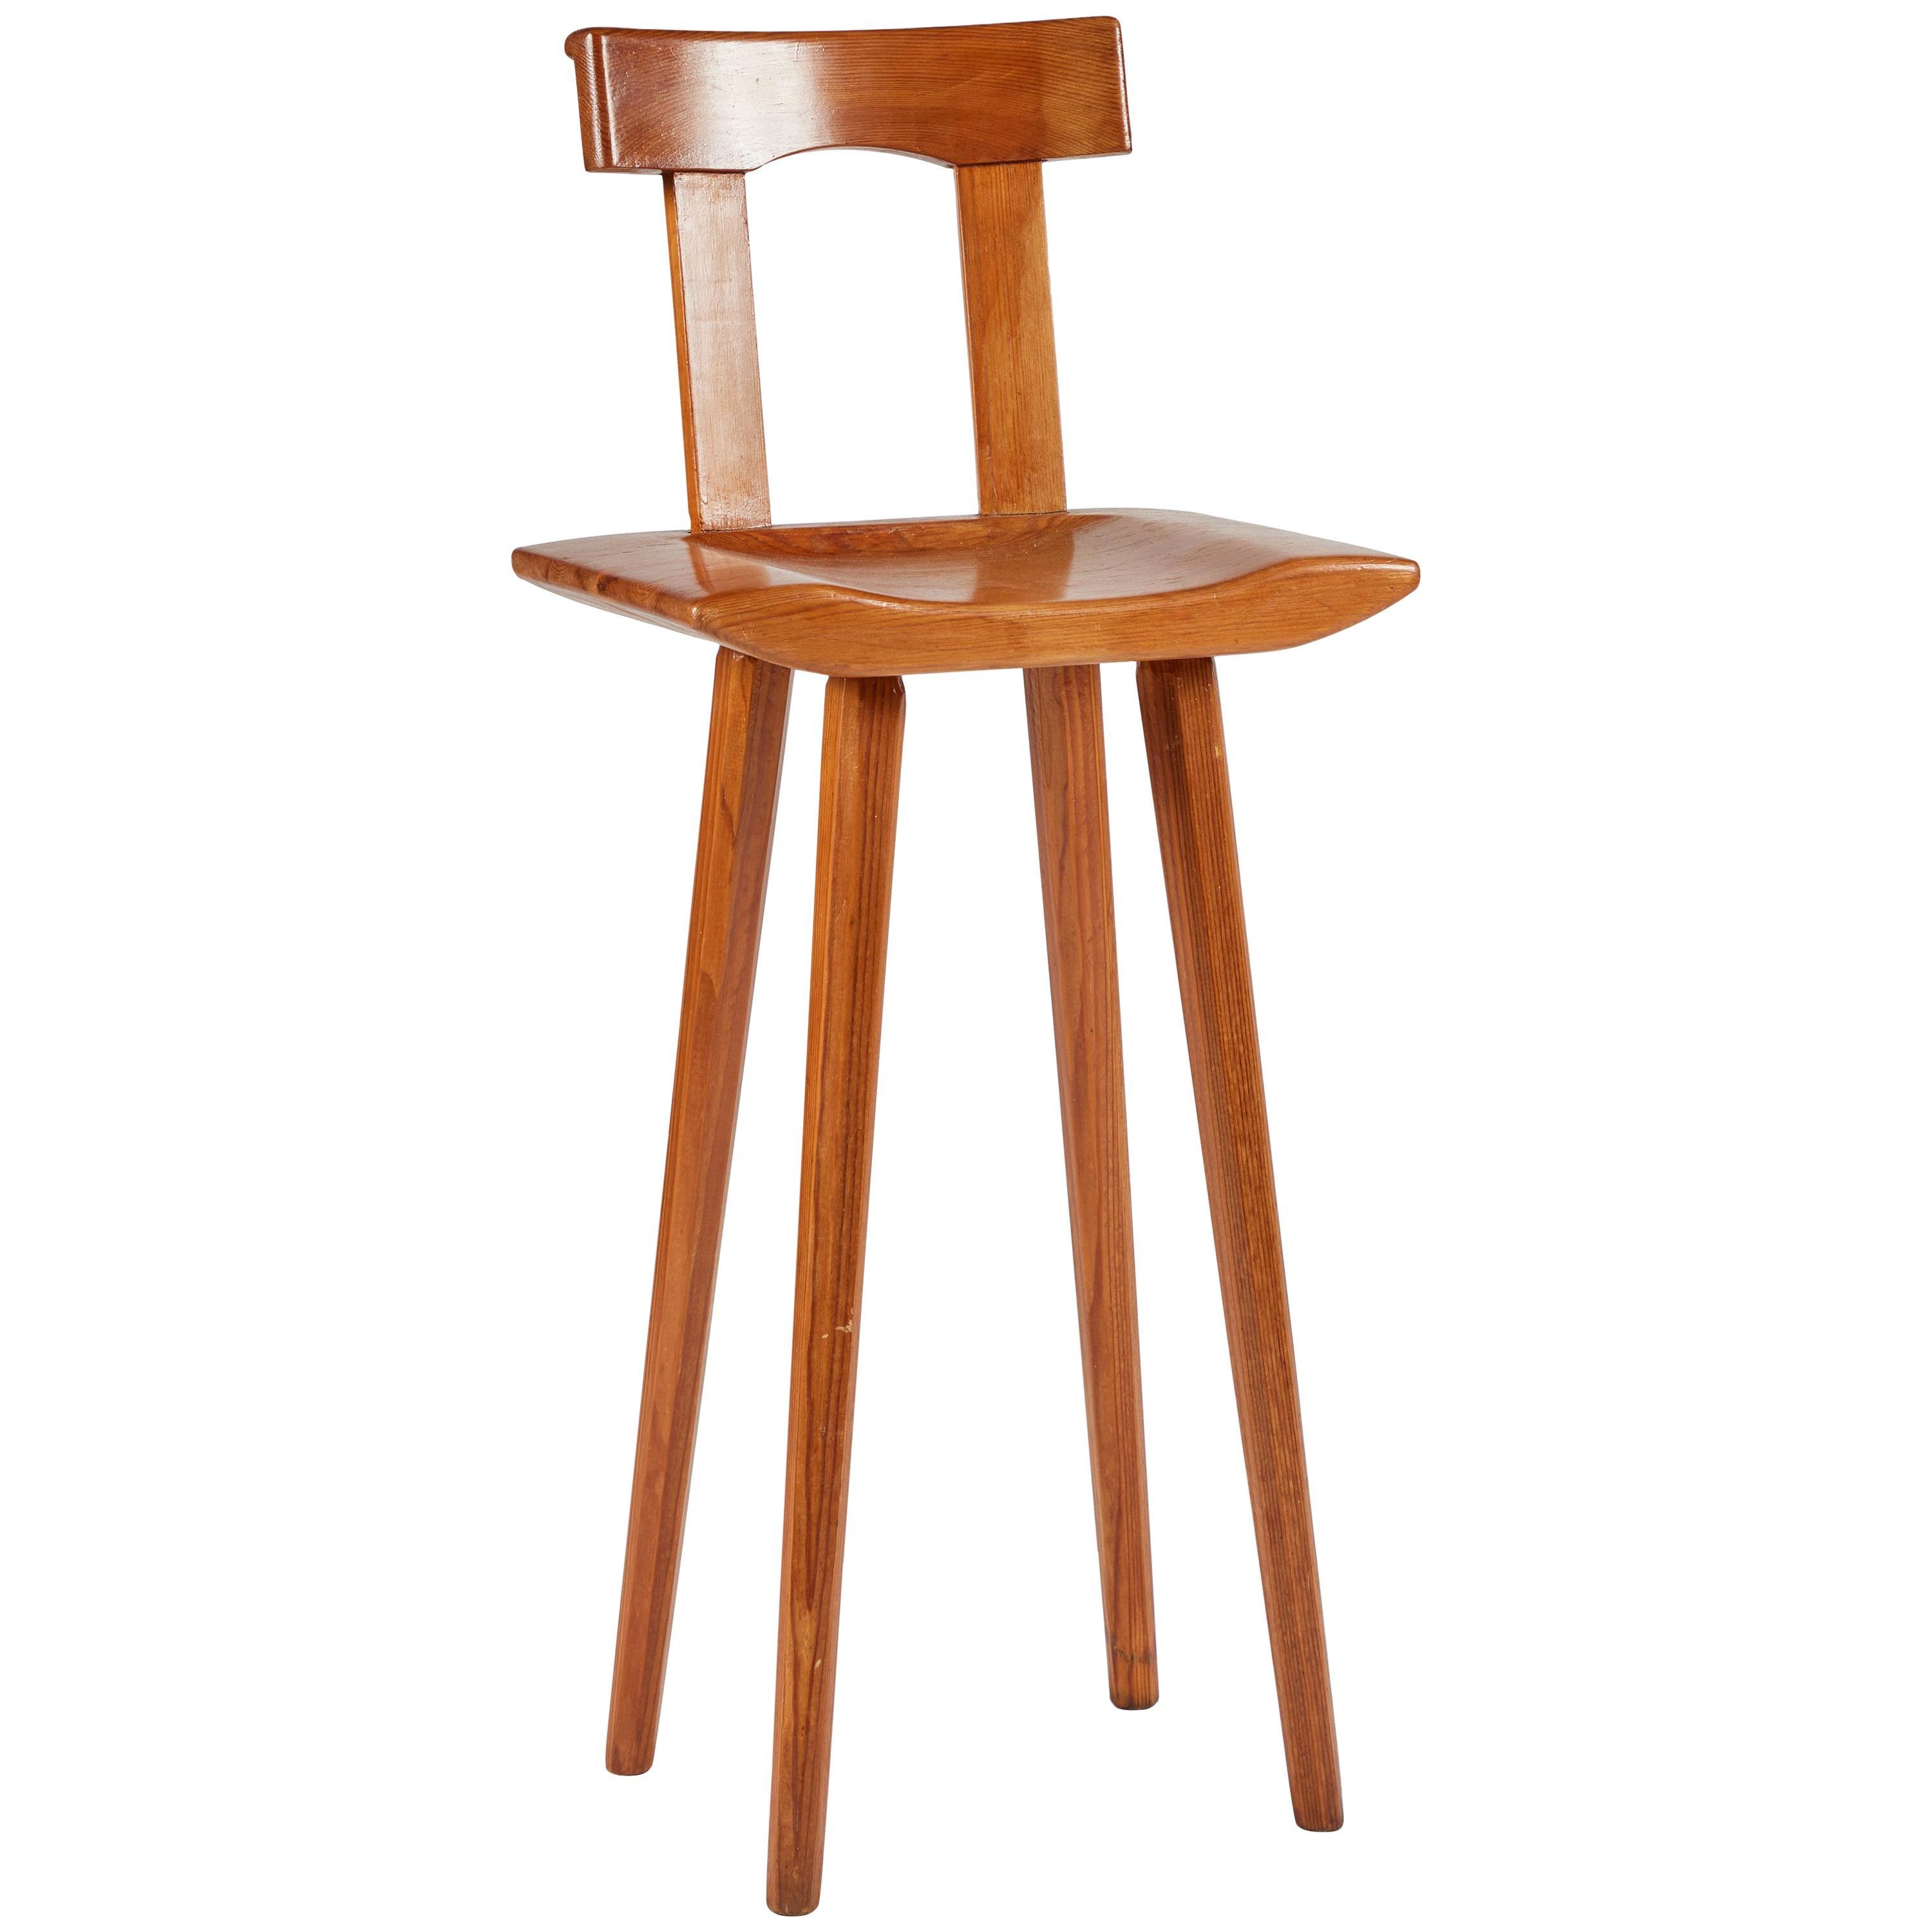 Midcentury Swedish Child's High Chair or Stool by Bengt Lundgren